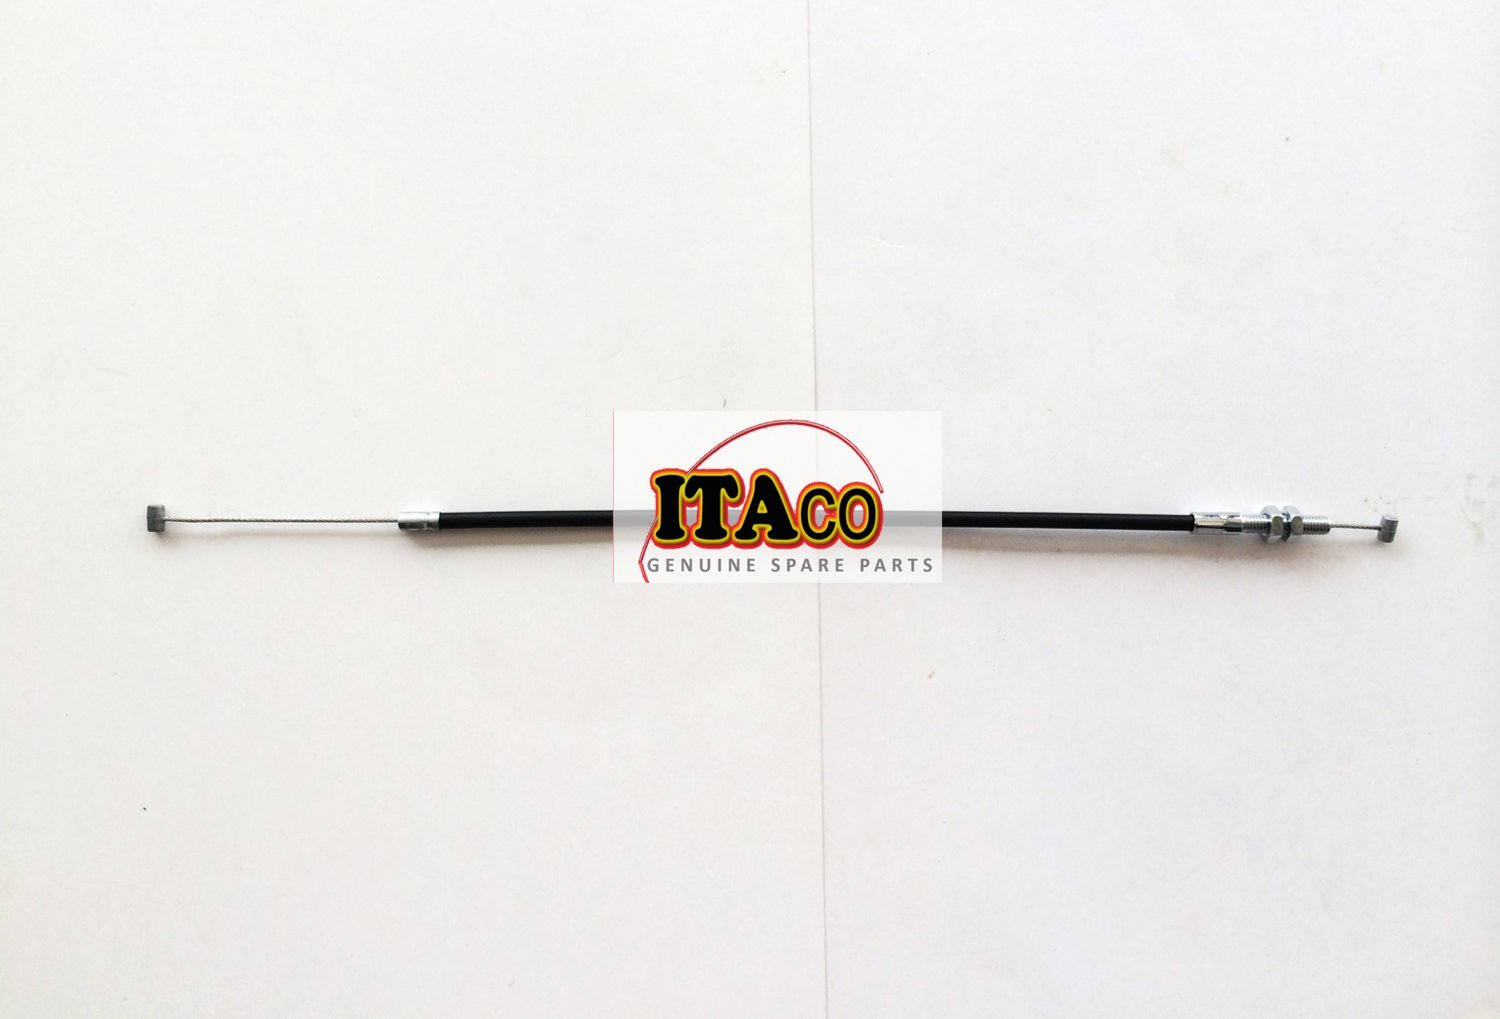 Throttle Cable Wire 3B2-63600-1M 0 M fit Tohatsu Nissan Outboard NS M 8HP 9.8HP ITACO